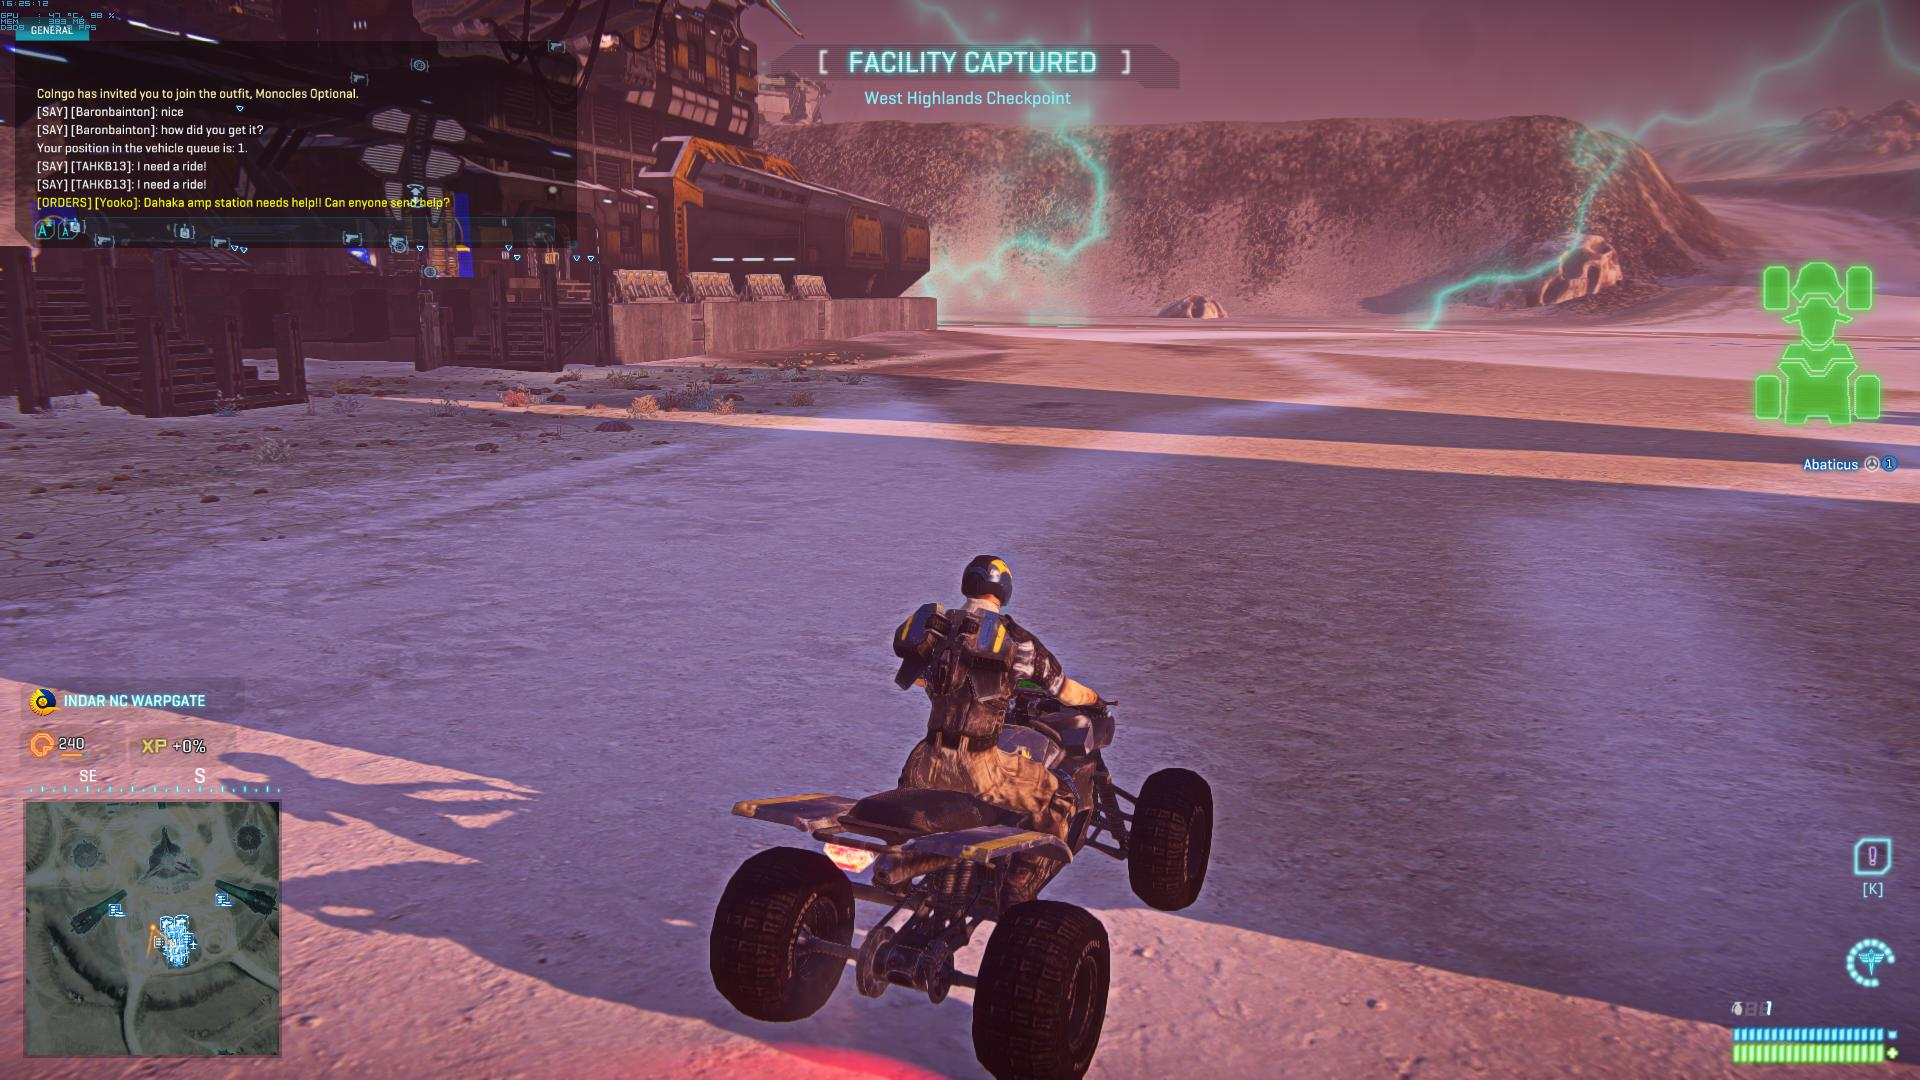 0007179c_PlanetSide2High_1.jpeg